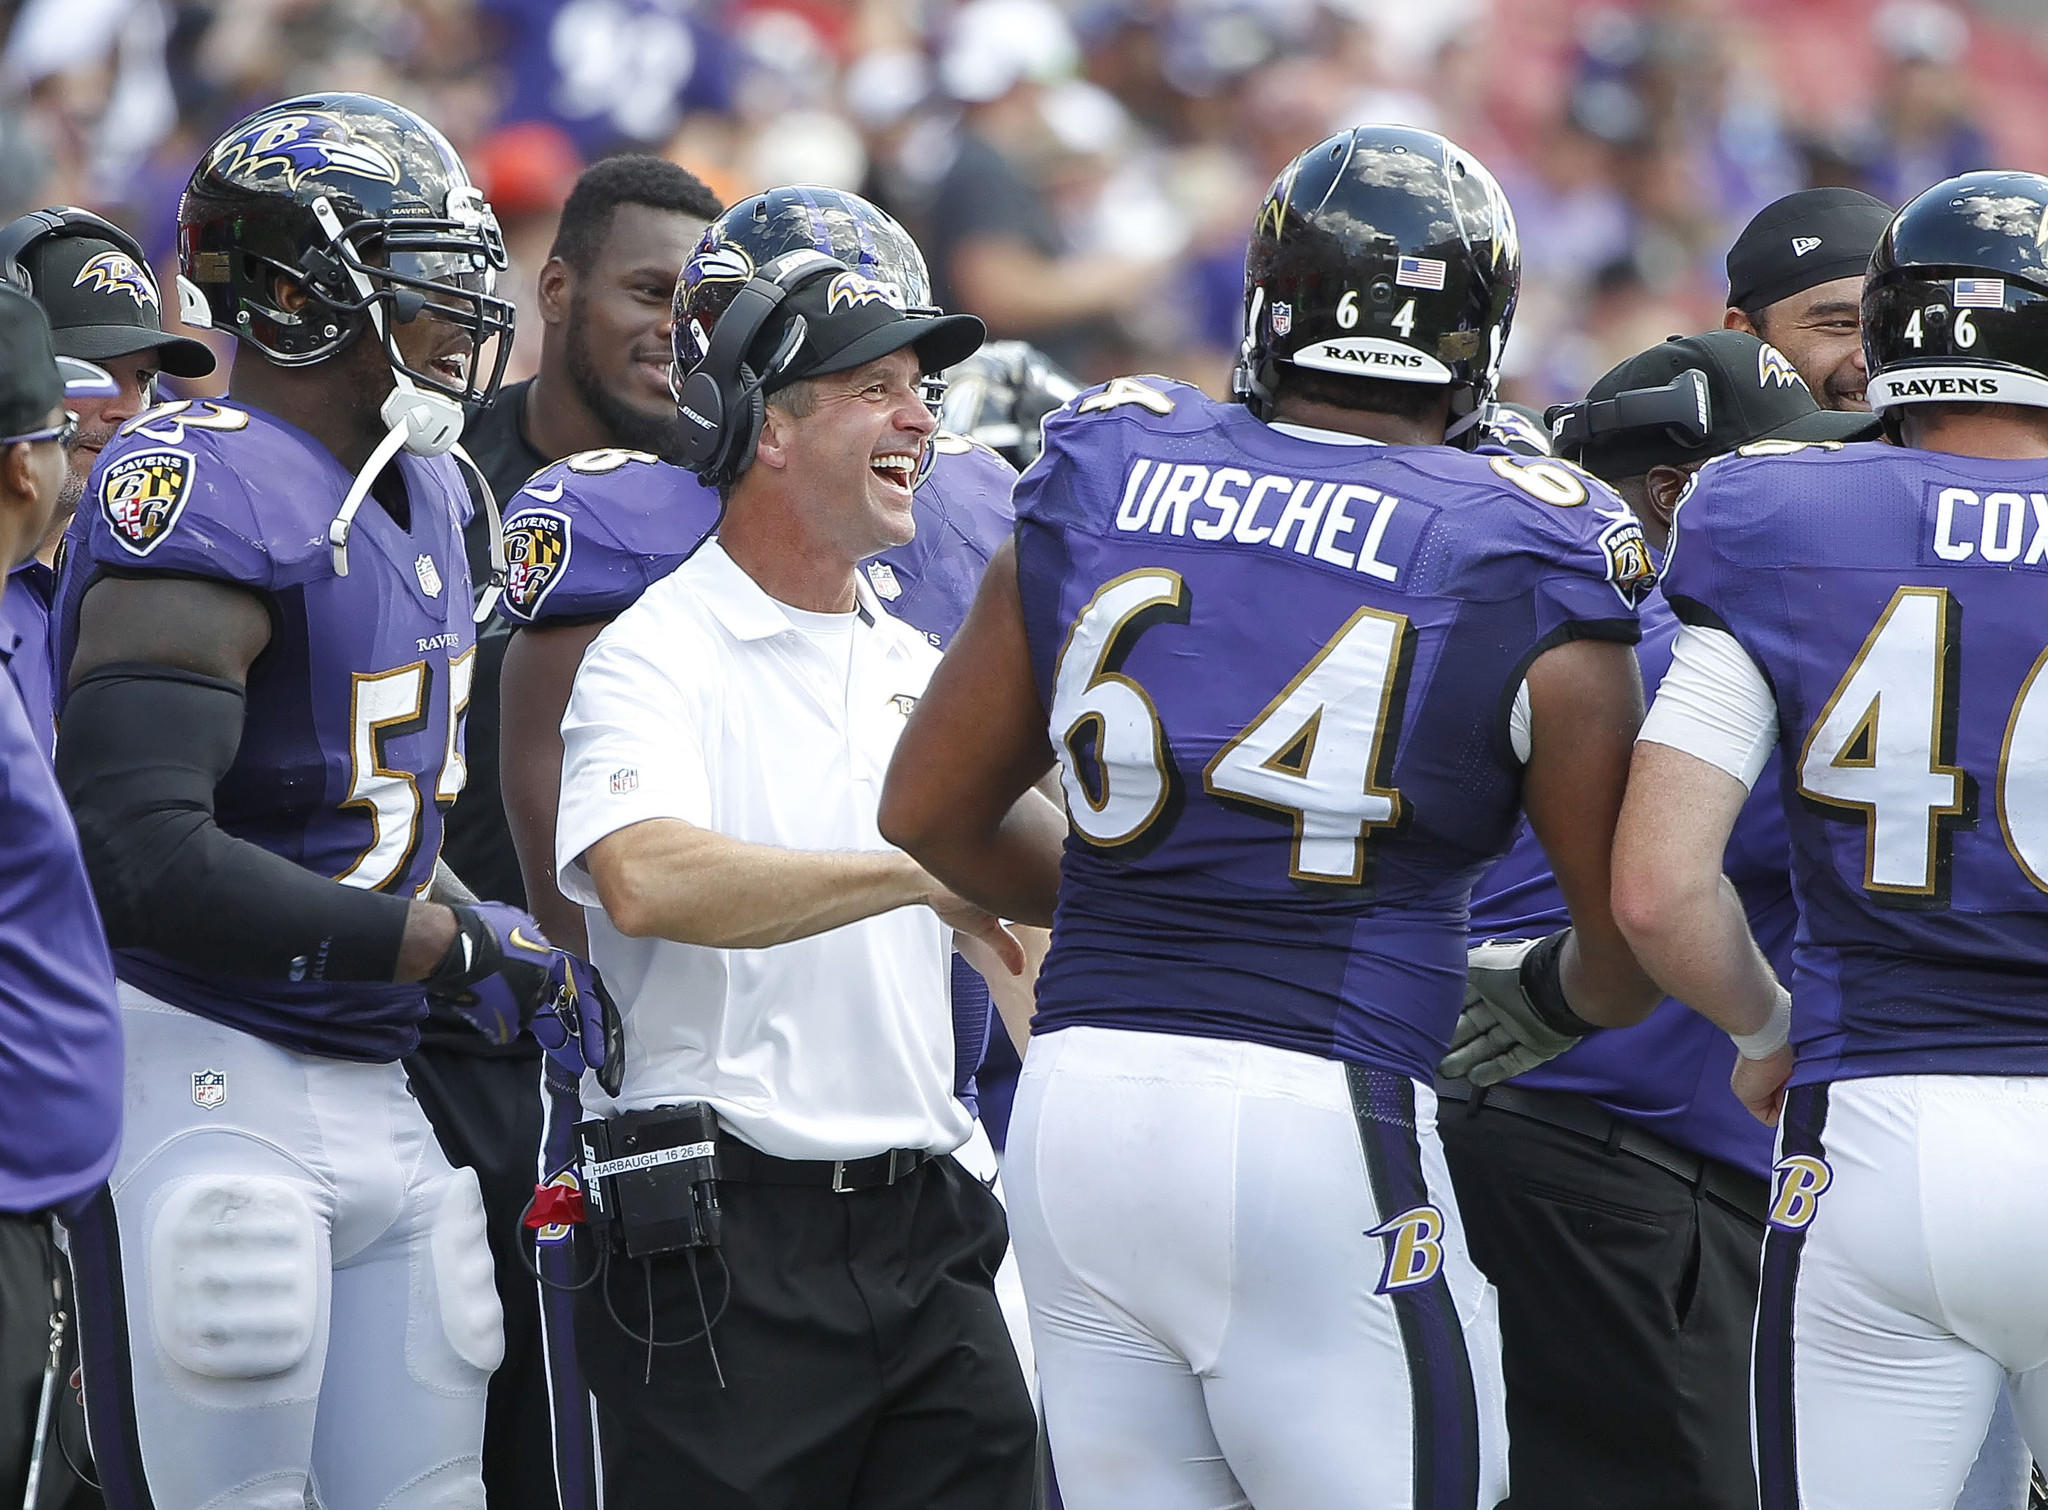 Ravens head coach John Harbaugh laughs with guard John Urschel after scoring against the Tampa Bay Buccaneers during the second half at Raymond James Stadium.